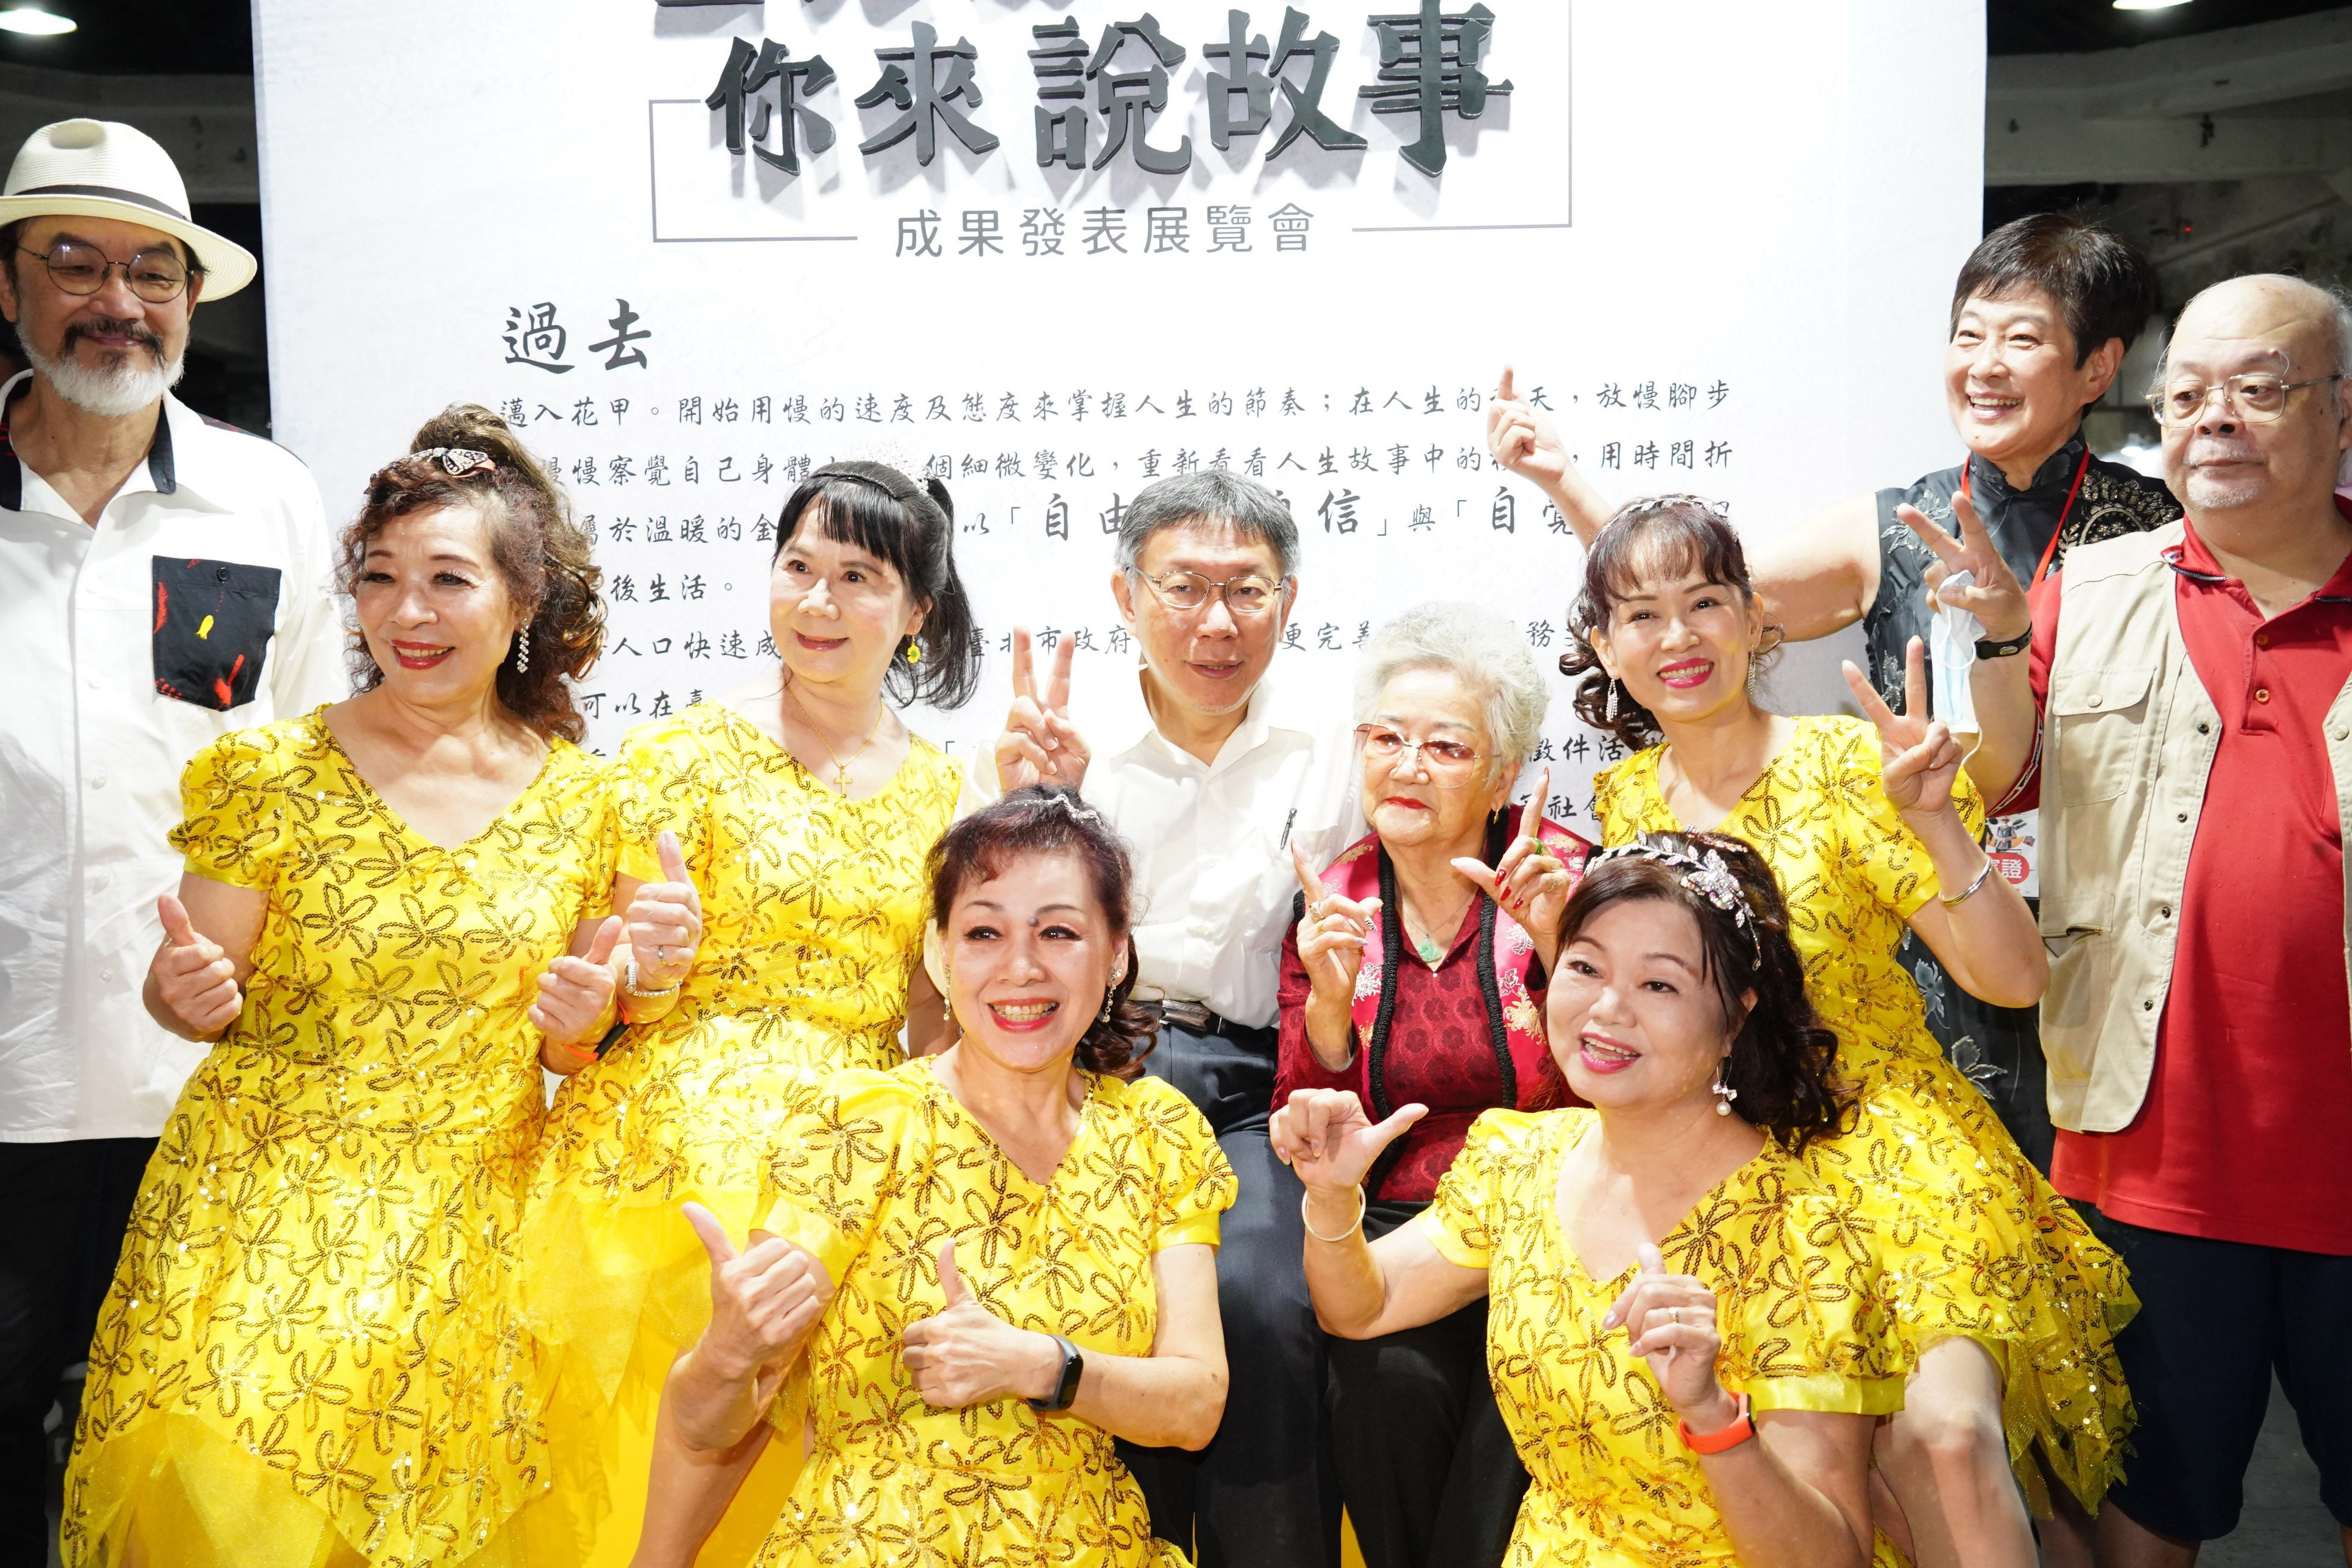 Mayor Ko with senior citizens at the press conference